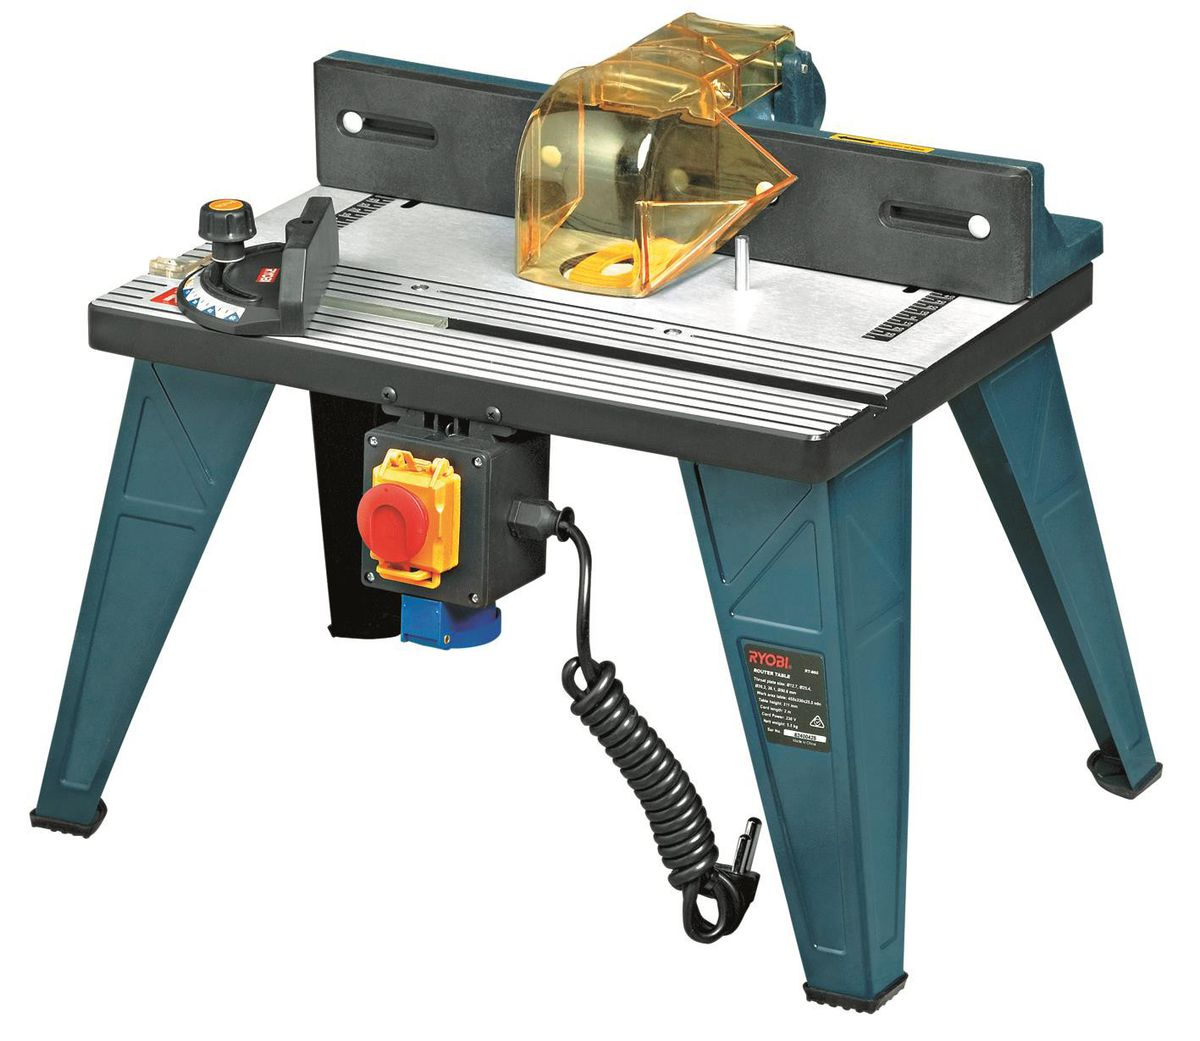 Ryobi router attachment table buy online in south africa ryobi router attachment table loading zoom greentooth